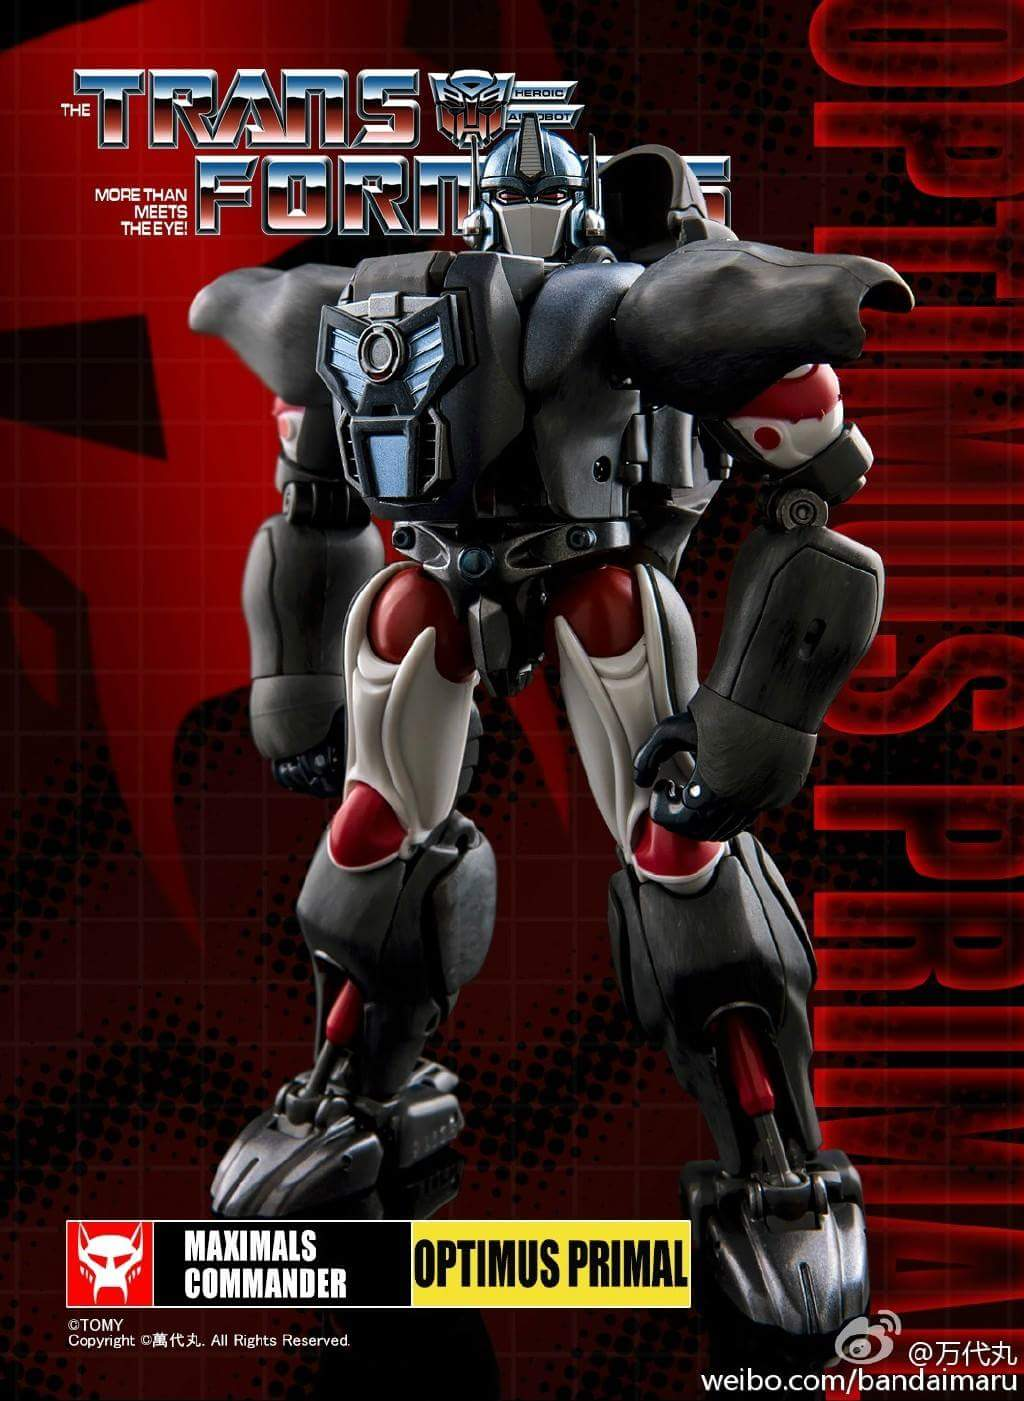 [Masterpiece] MP-32, MP-38 Optimus Primal et MP-38+ Burning Convoy (Beast Wars) - Page 4 IIMLzBpv